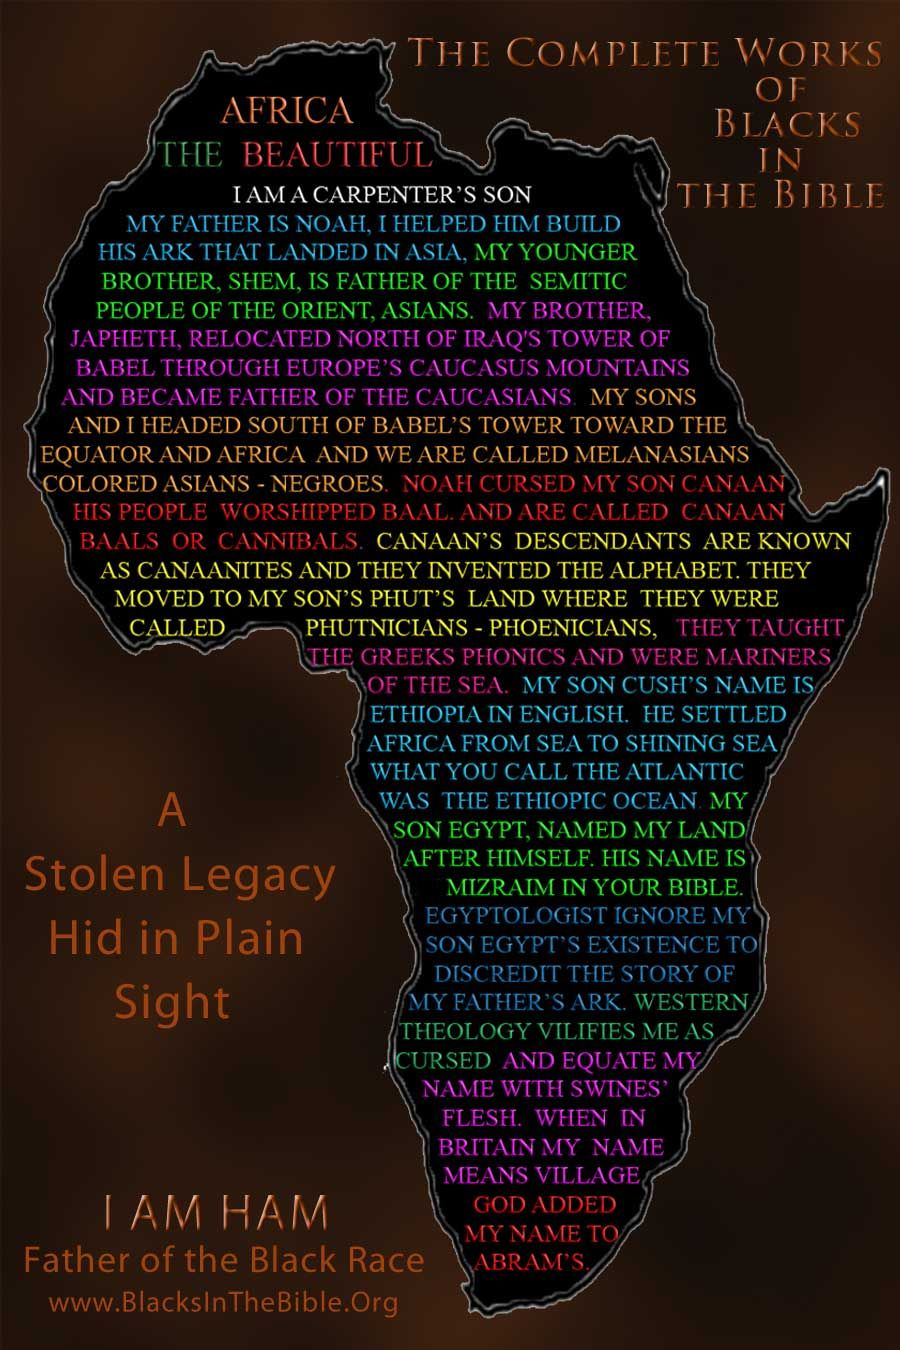 black history facts in the bible